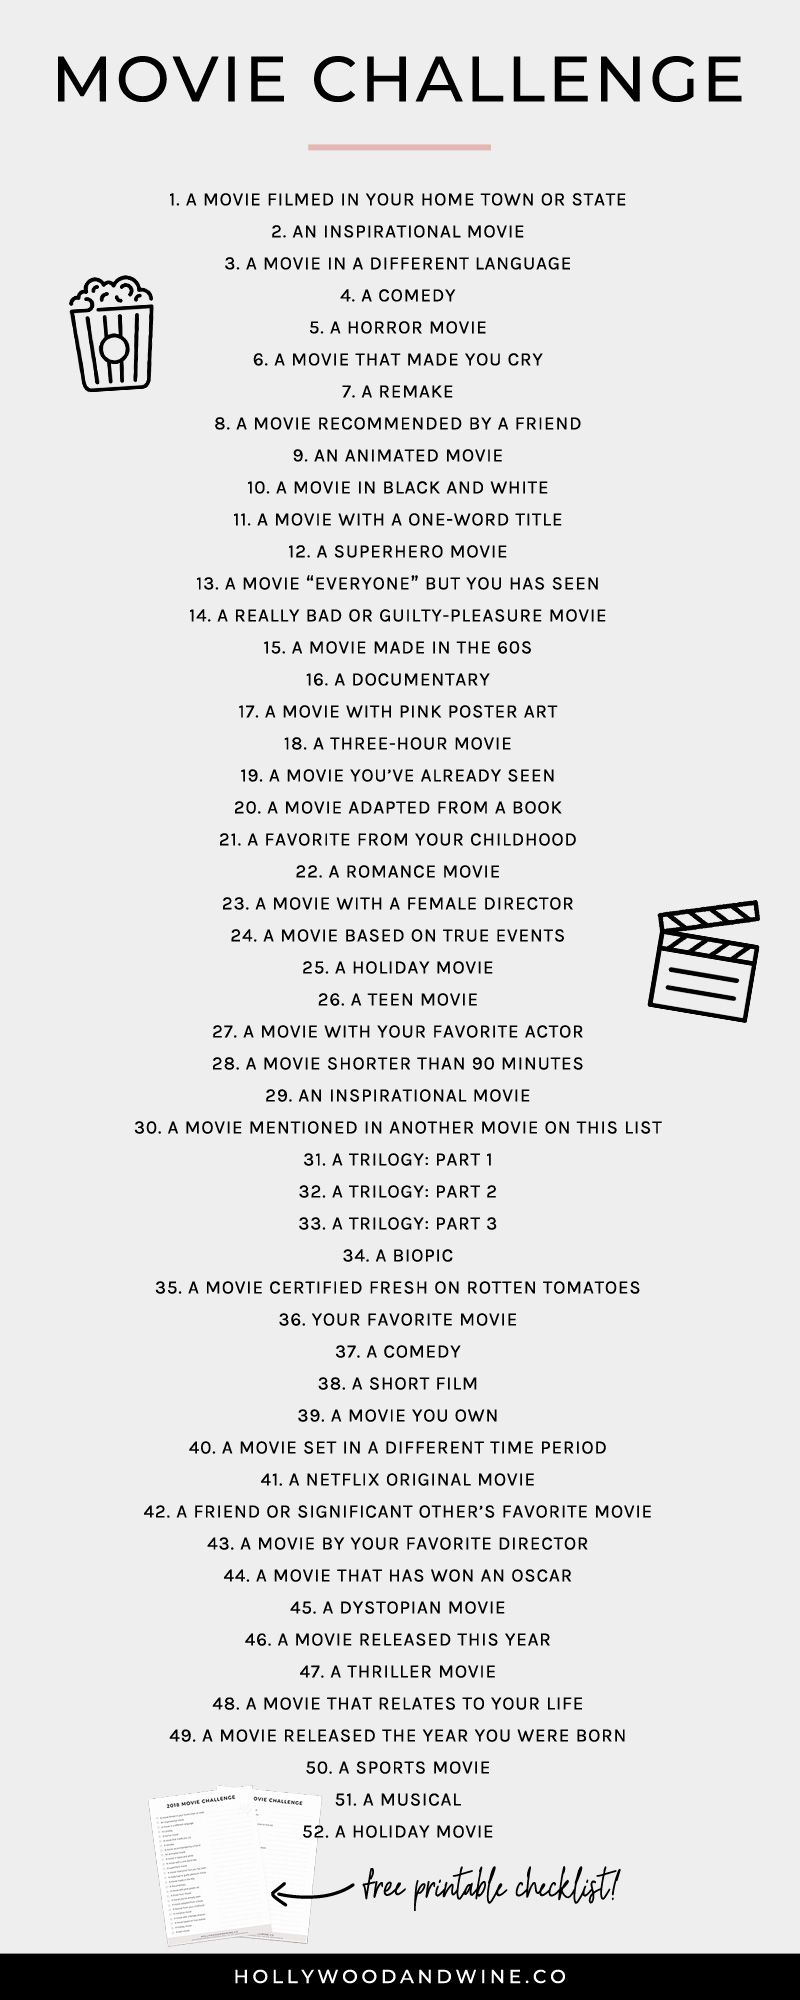 Take the movie challenge! How many movies from the list can you complete this year?